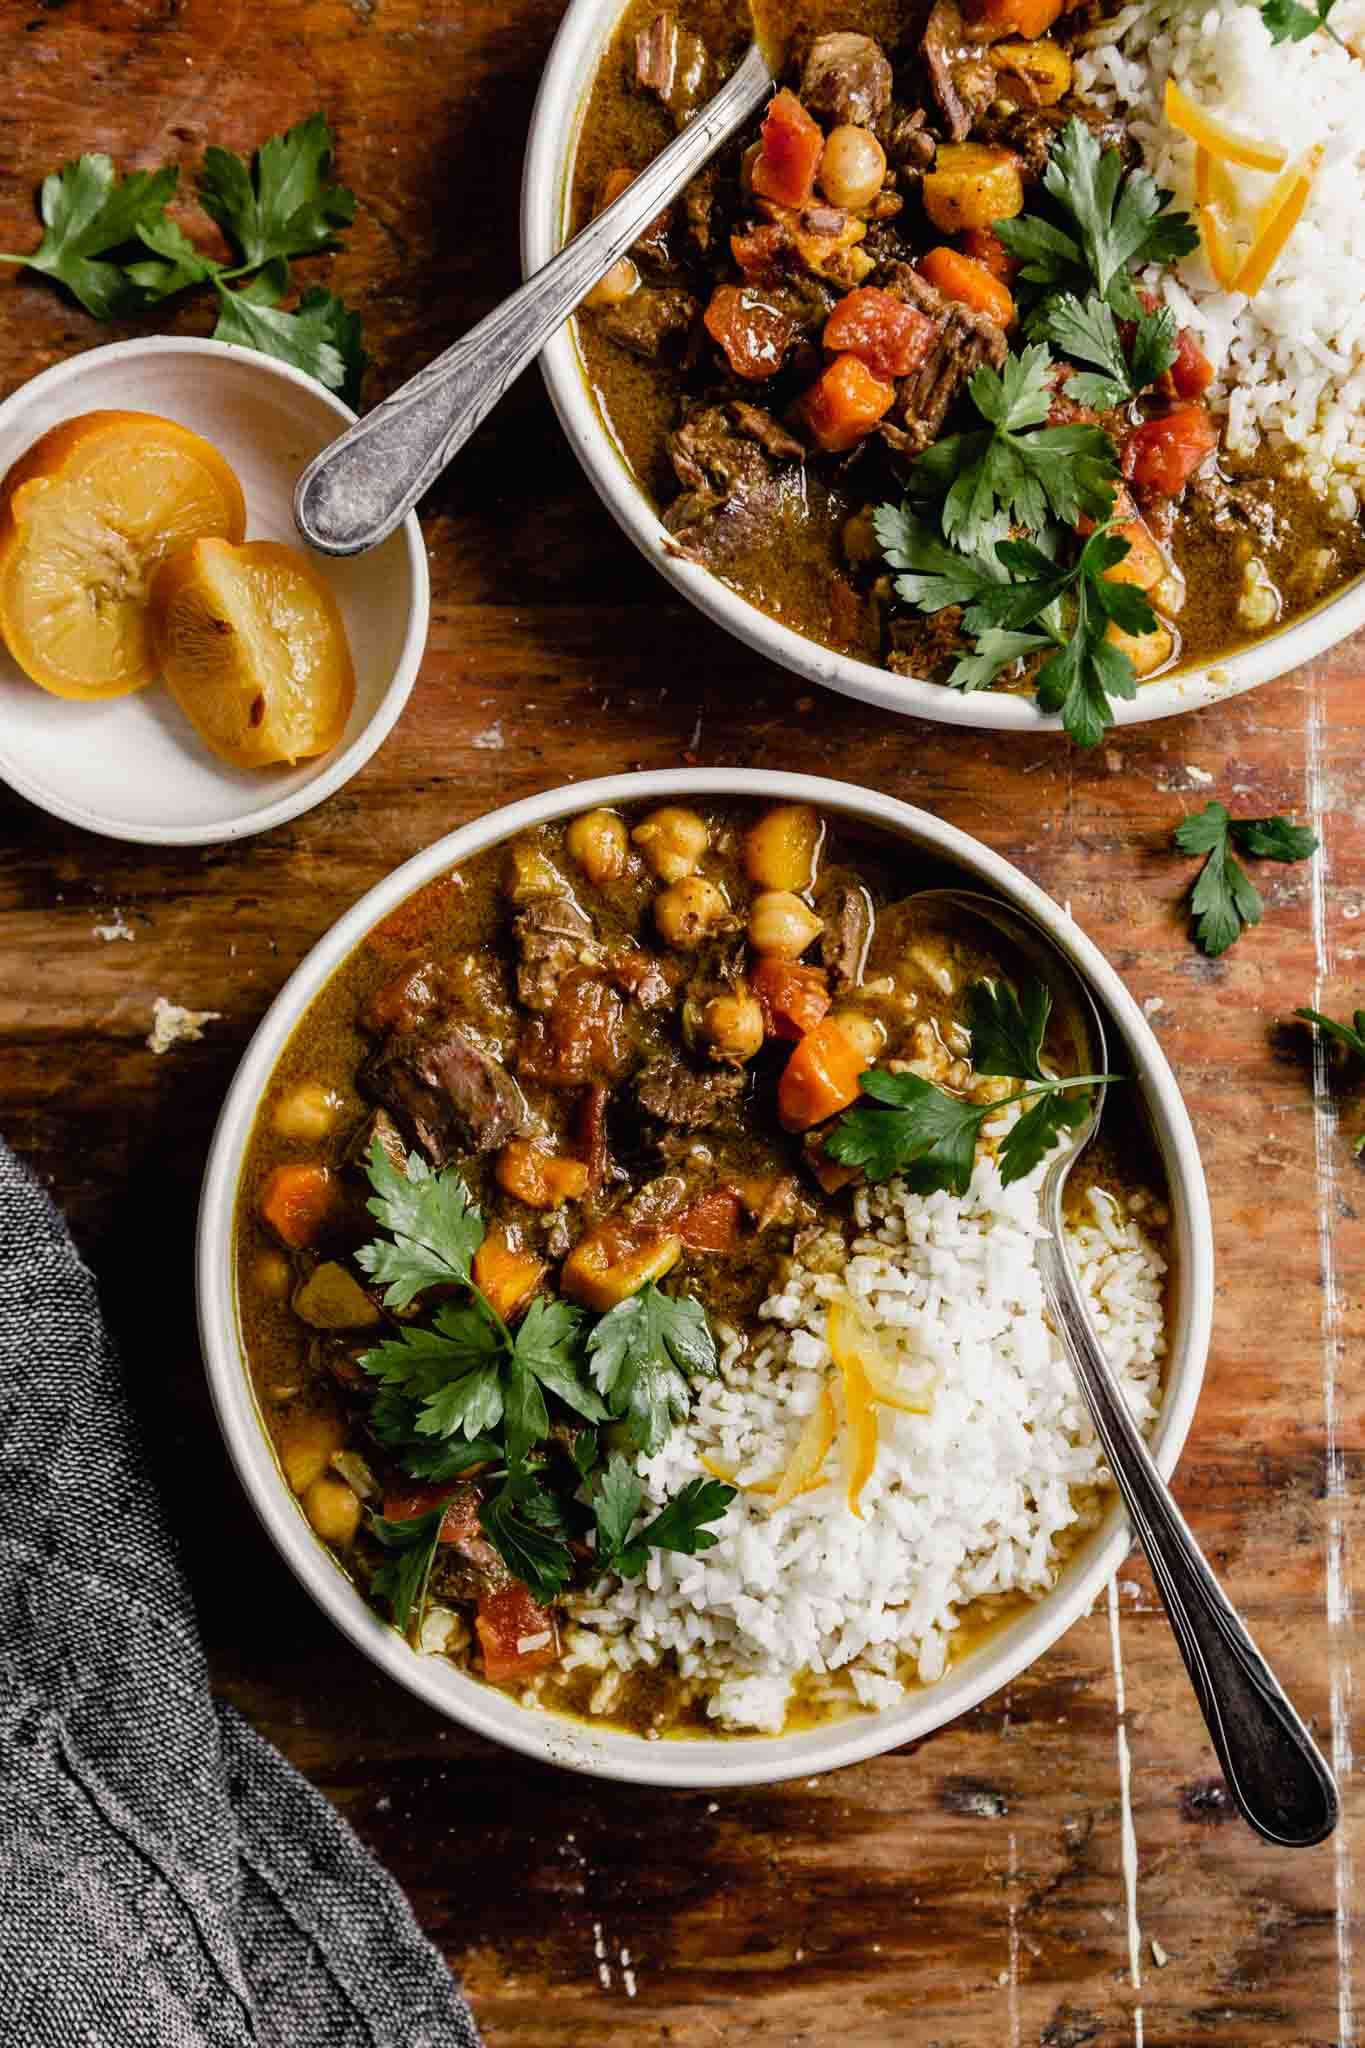 lamb stew with chickpeas, parsley, and rice in a white bowl set on a wooden table